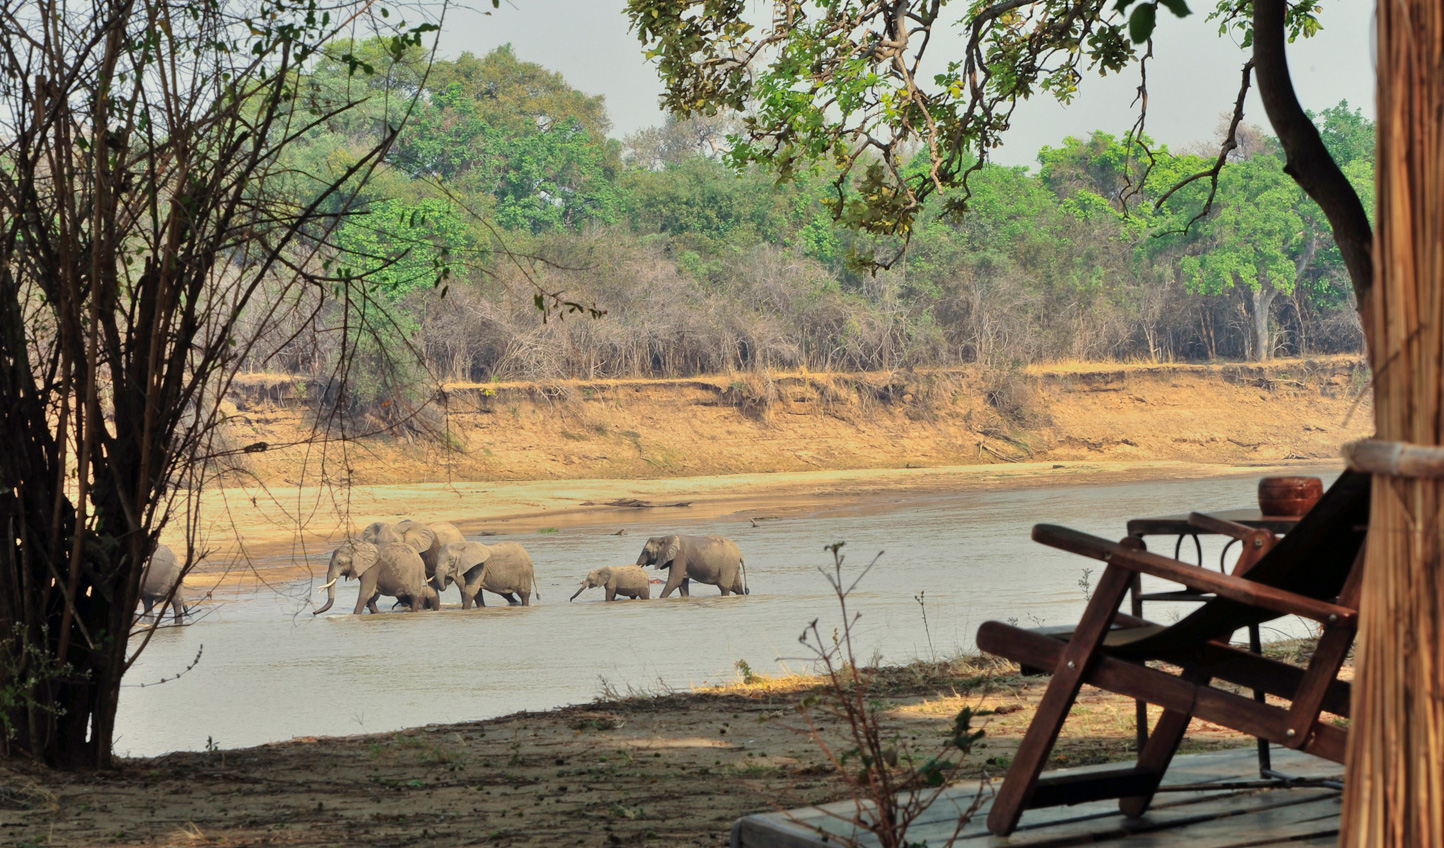 Watch elephants crossing the Luangwa River from the camp